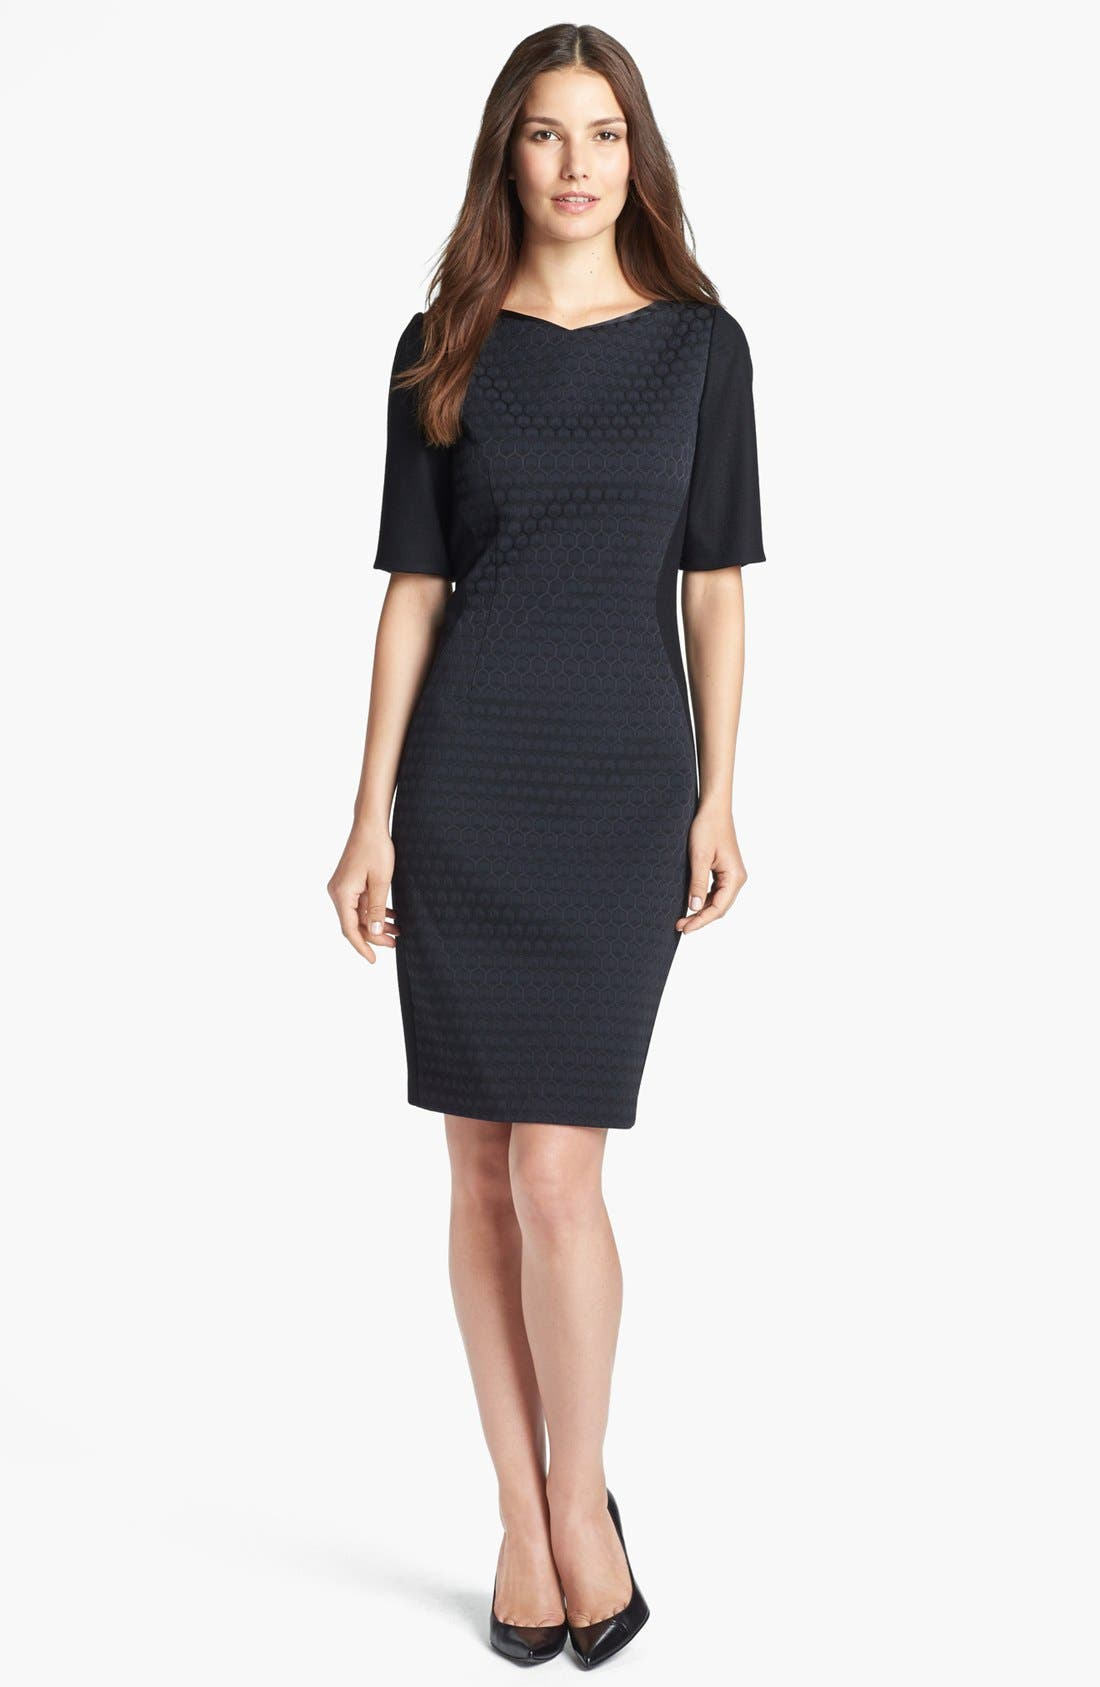 Alternate Image 1 Selected - Elie Tahari 'Mila' Elbow Sleeve Dress